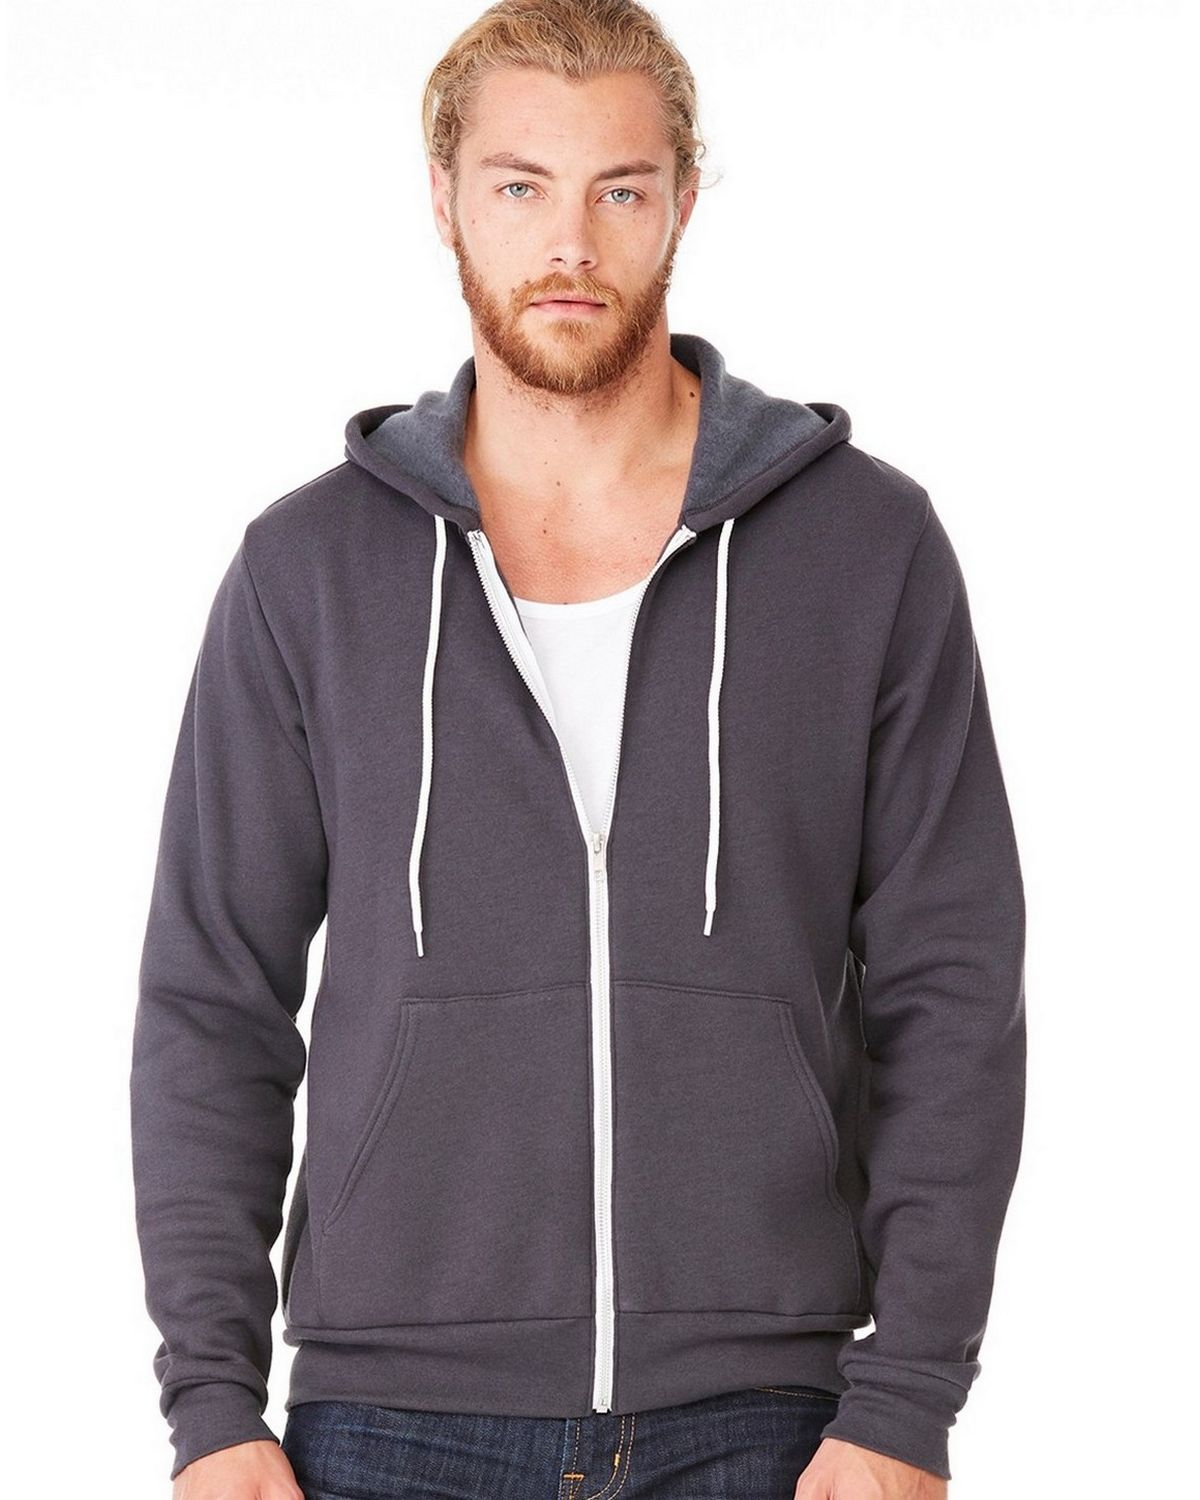 Bella + Canvas C3739 Unisex Full-Zip Hoodie - Dark Grey Heather - 2X C3739